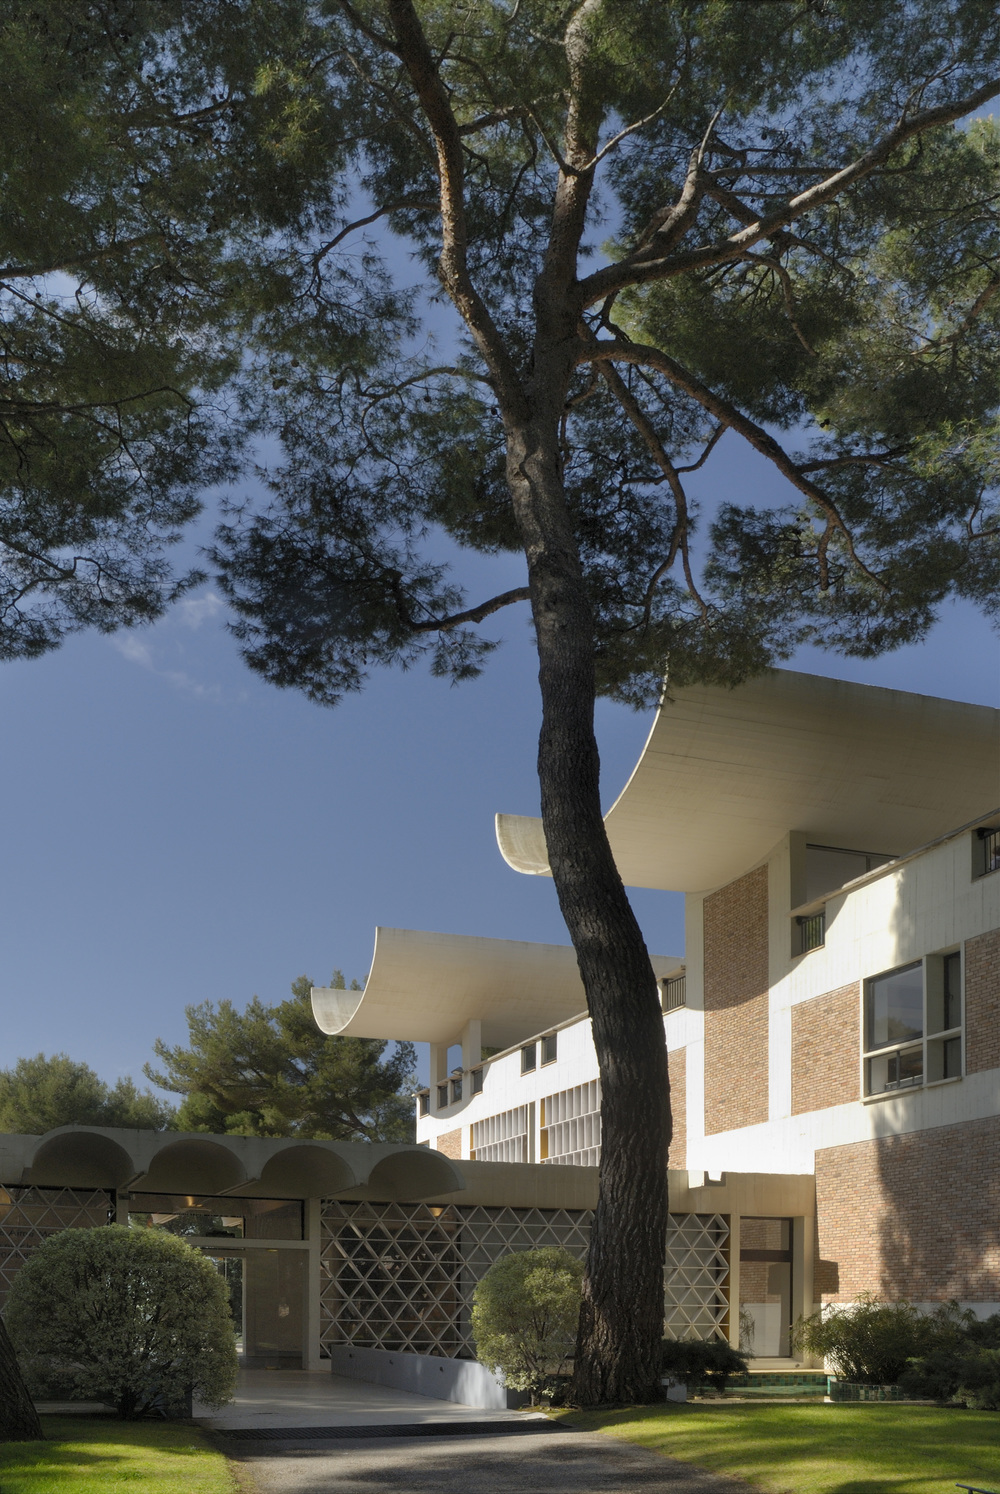 Fondation Maeght à Saint-Paul de Vence  Photo Jean-Jacques L'Héritier   © Archives Fondation Maeght.